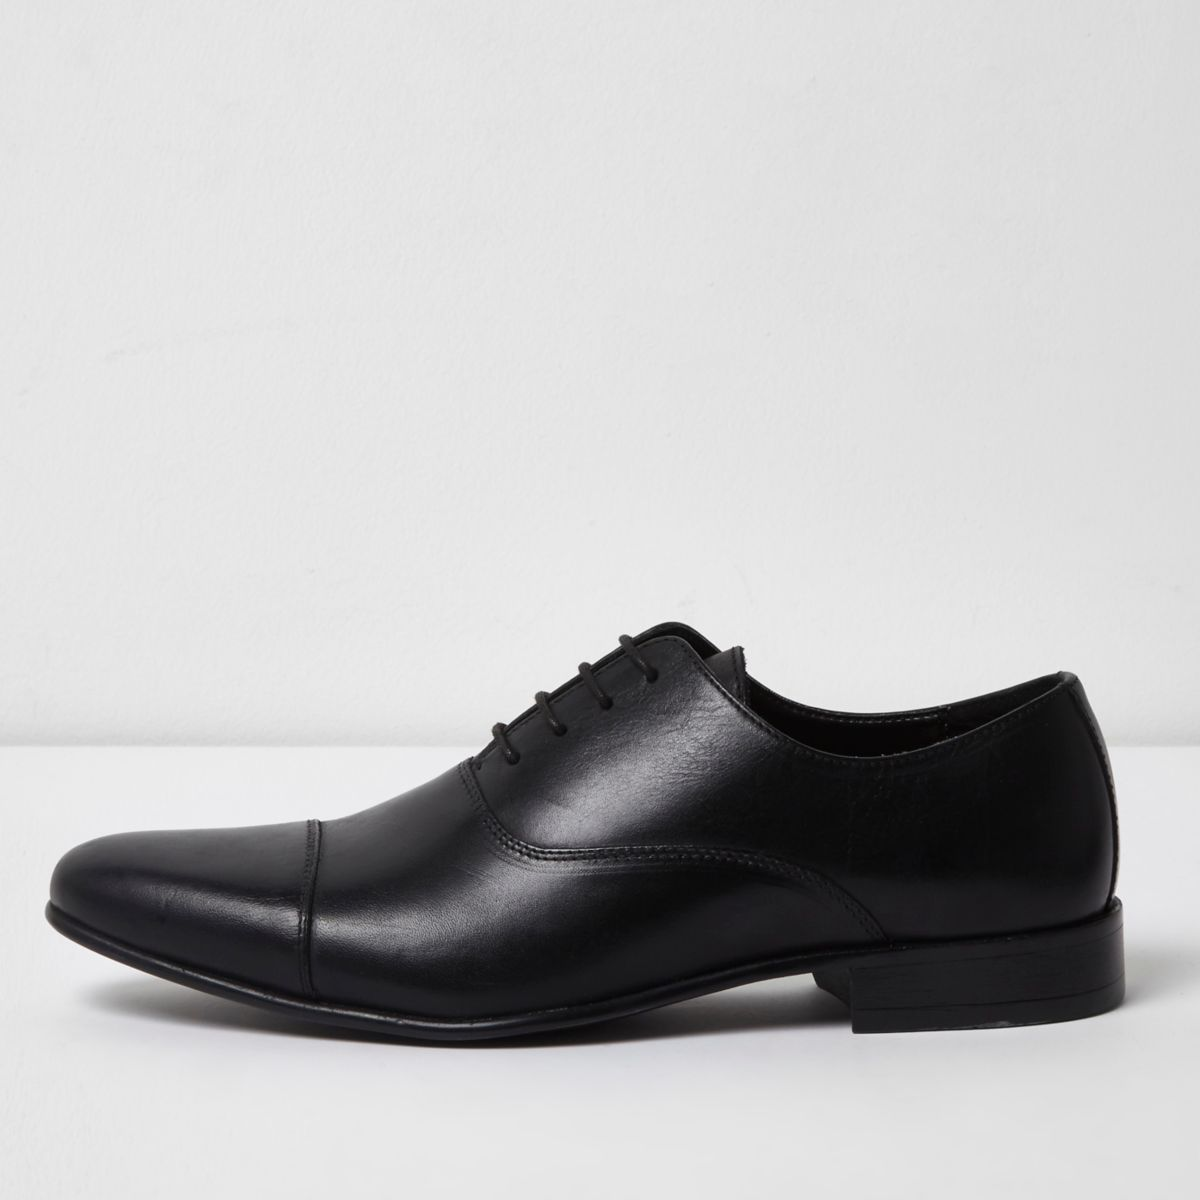 Black leather toe cap Oxford shoes